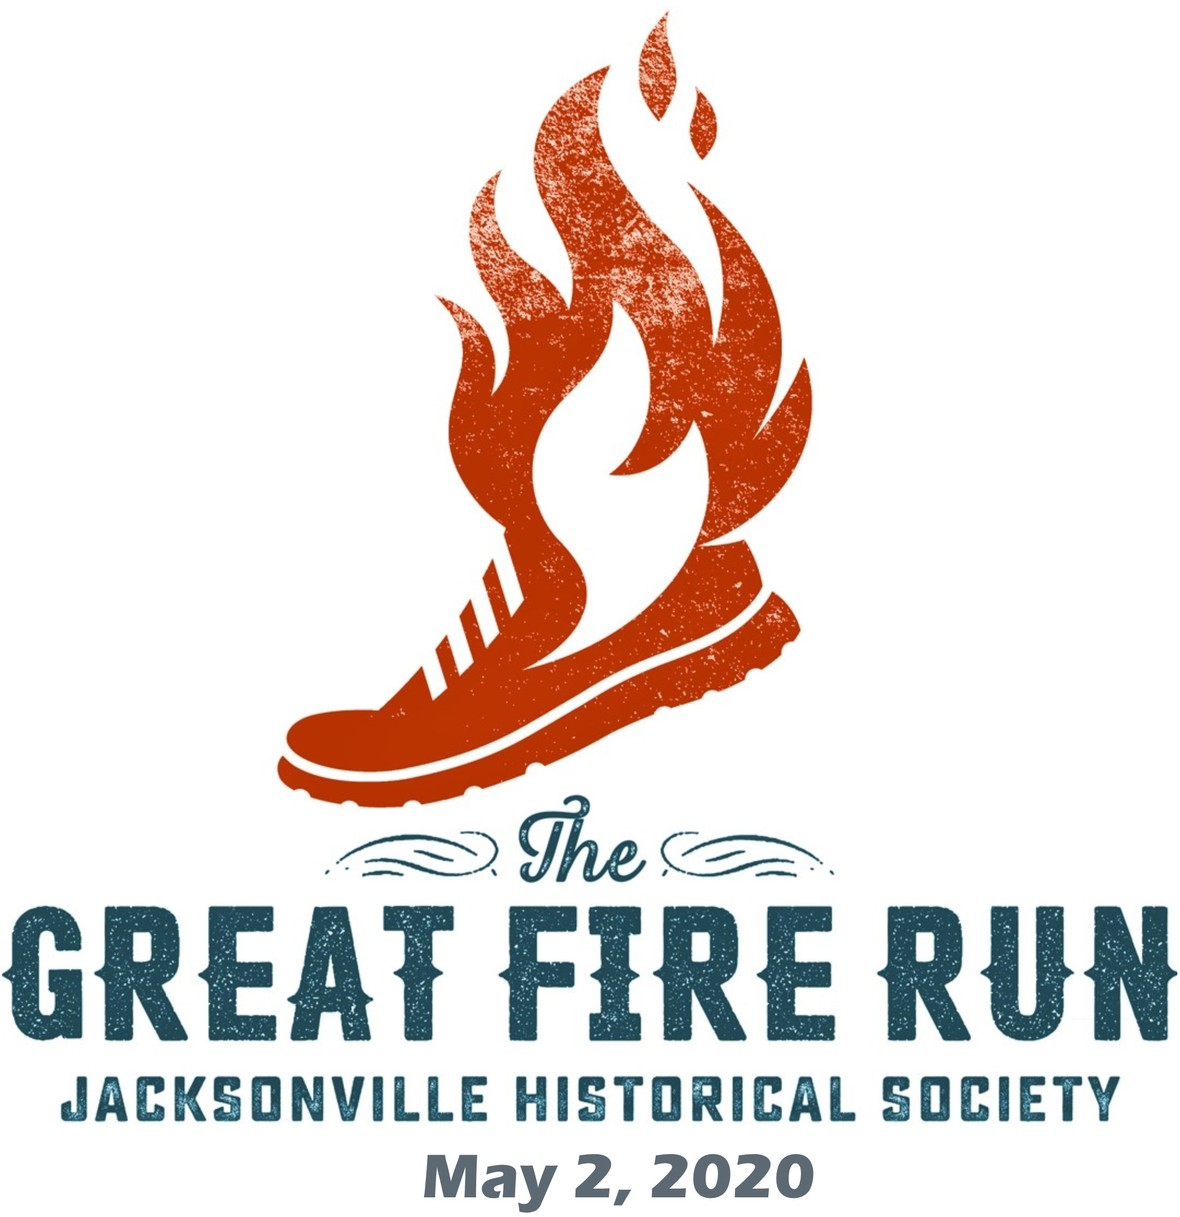 Fire Run logo with date